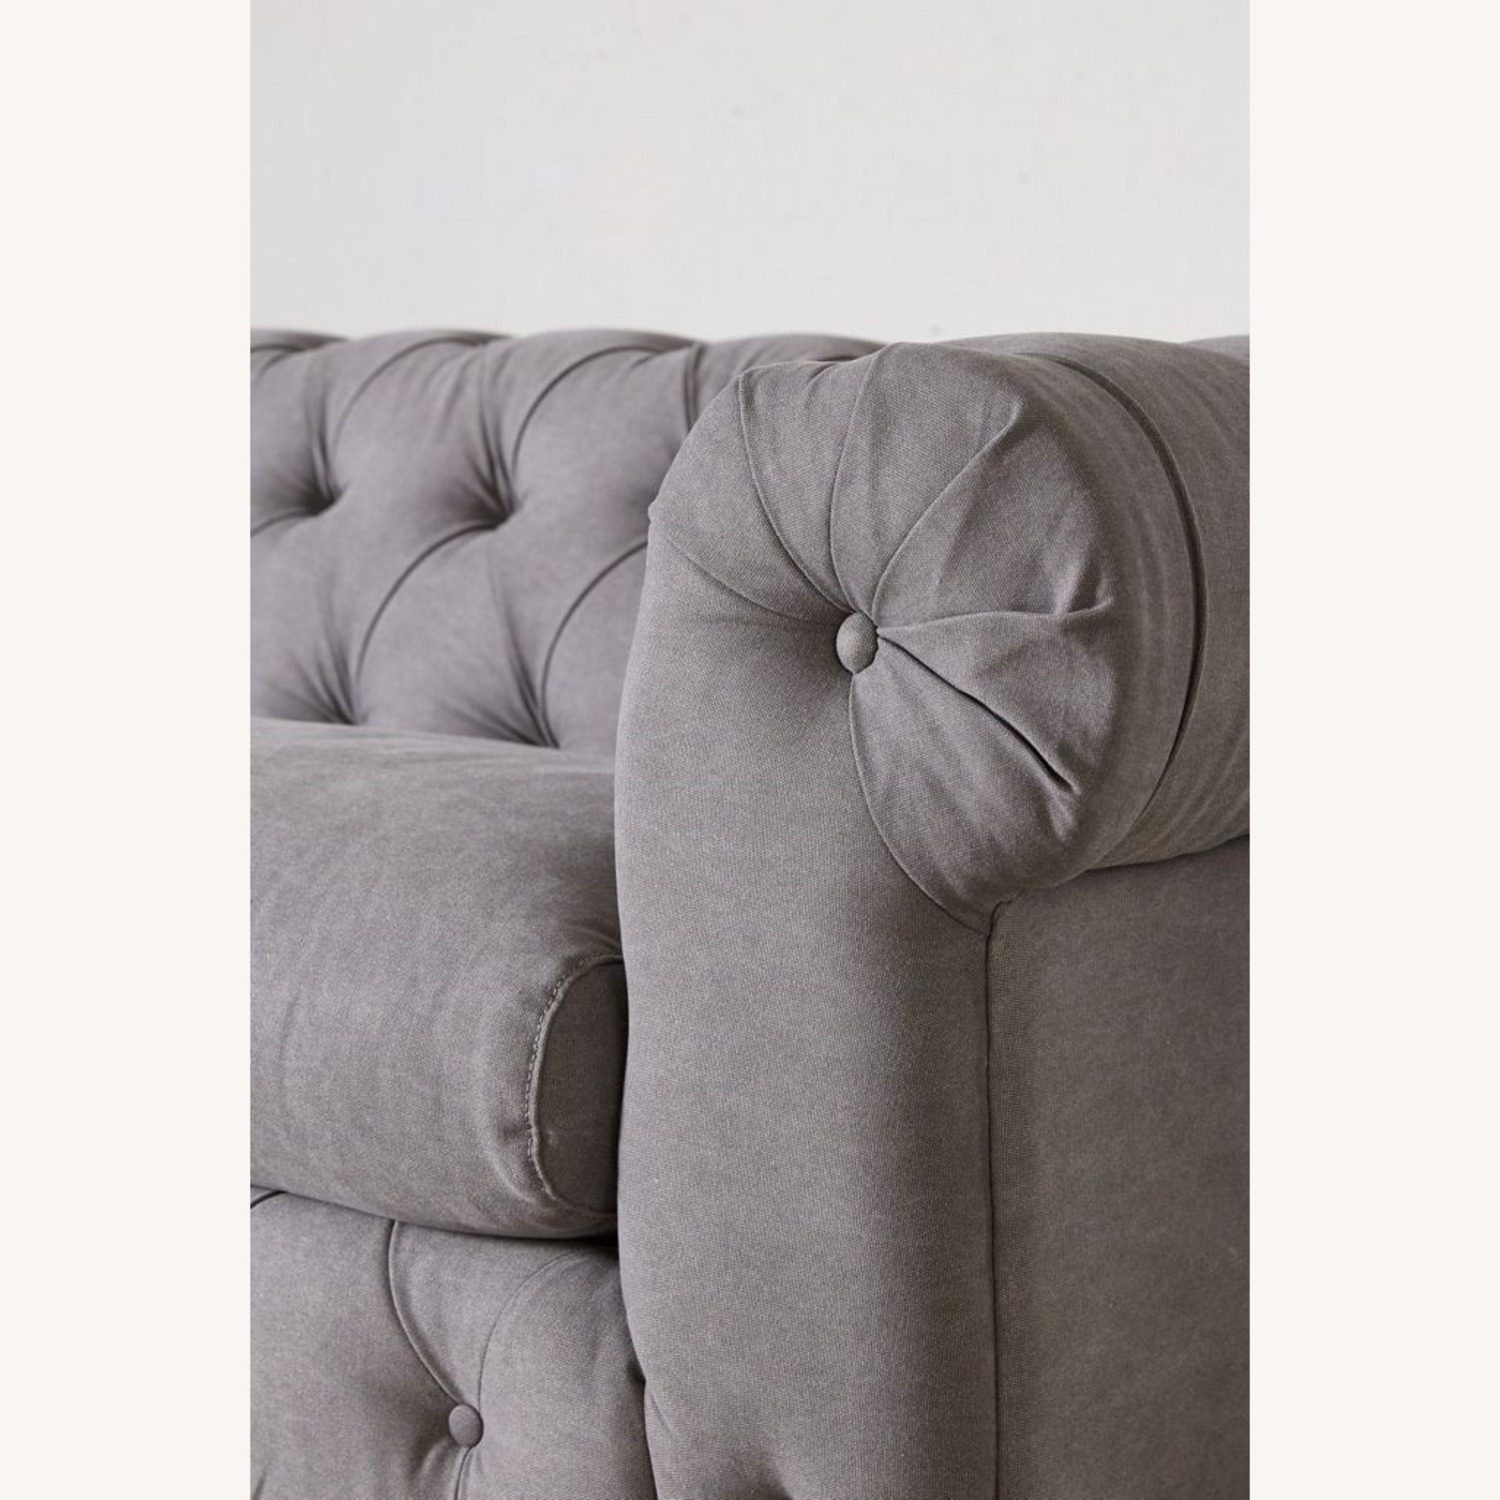 Anthropologie Canal Tufted Sofa - image-6